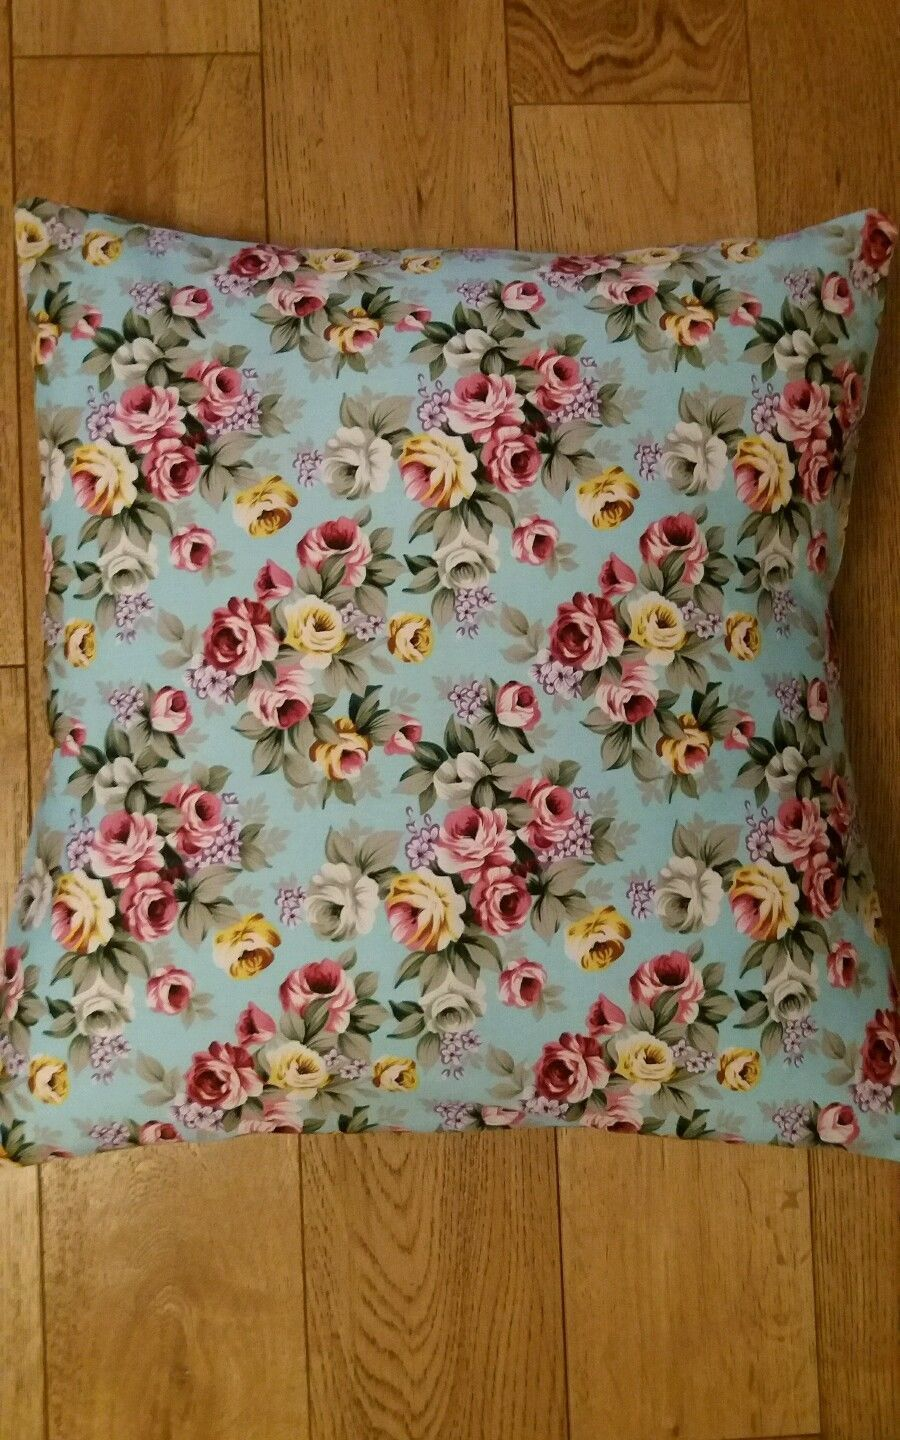 New cushion cover duck egg blue floral and upcycled denim handmade